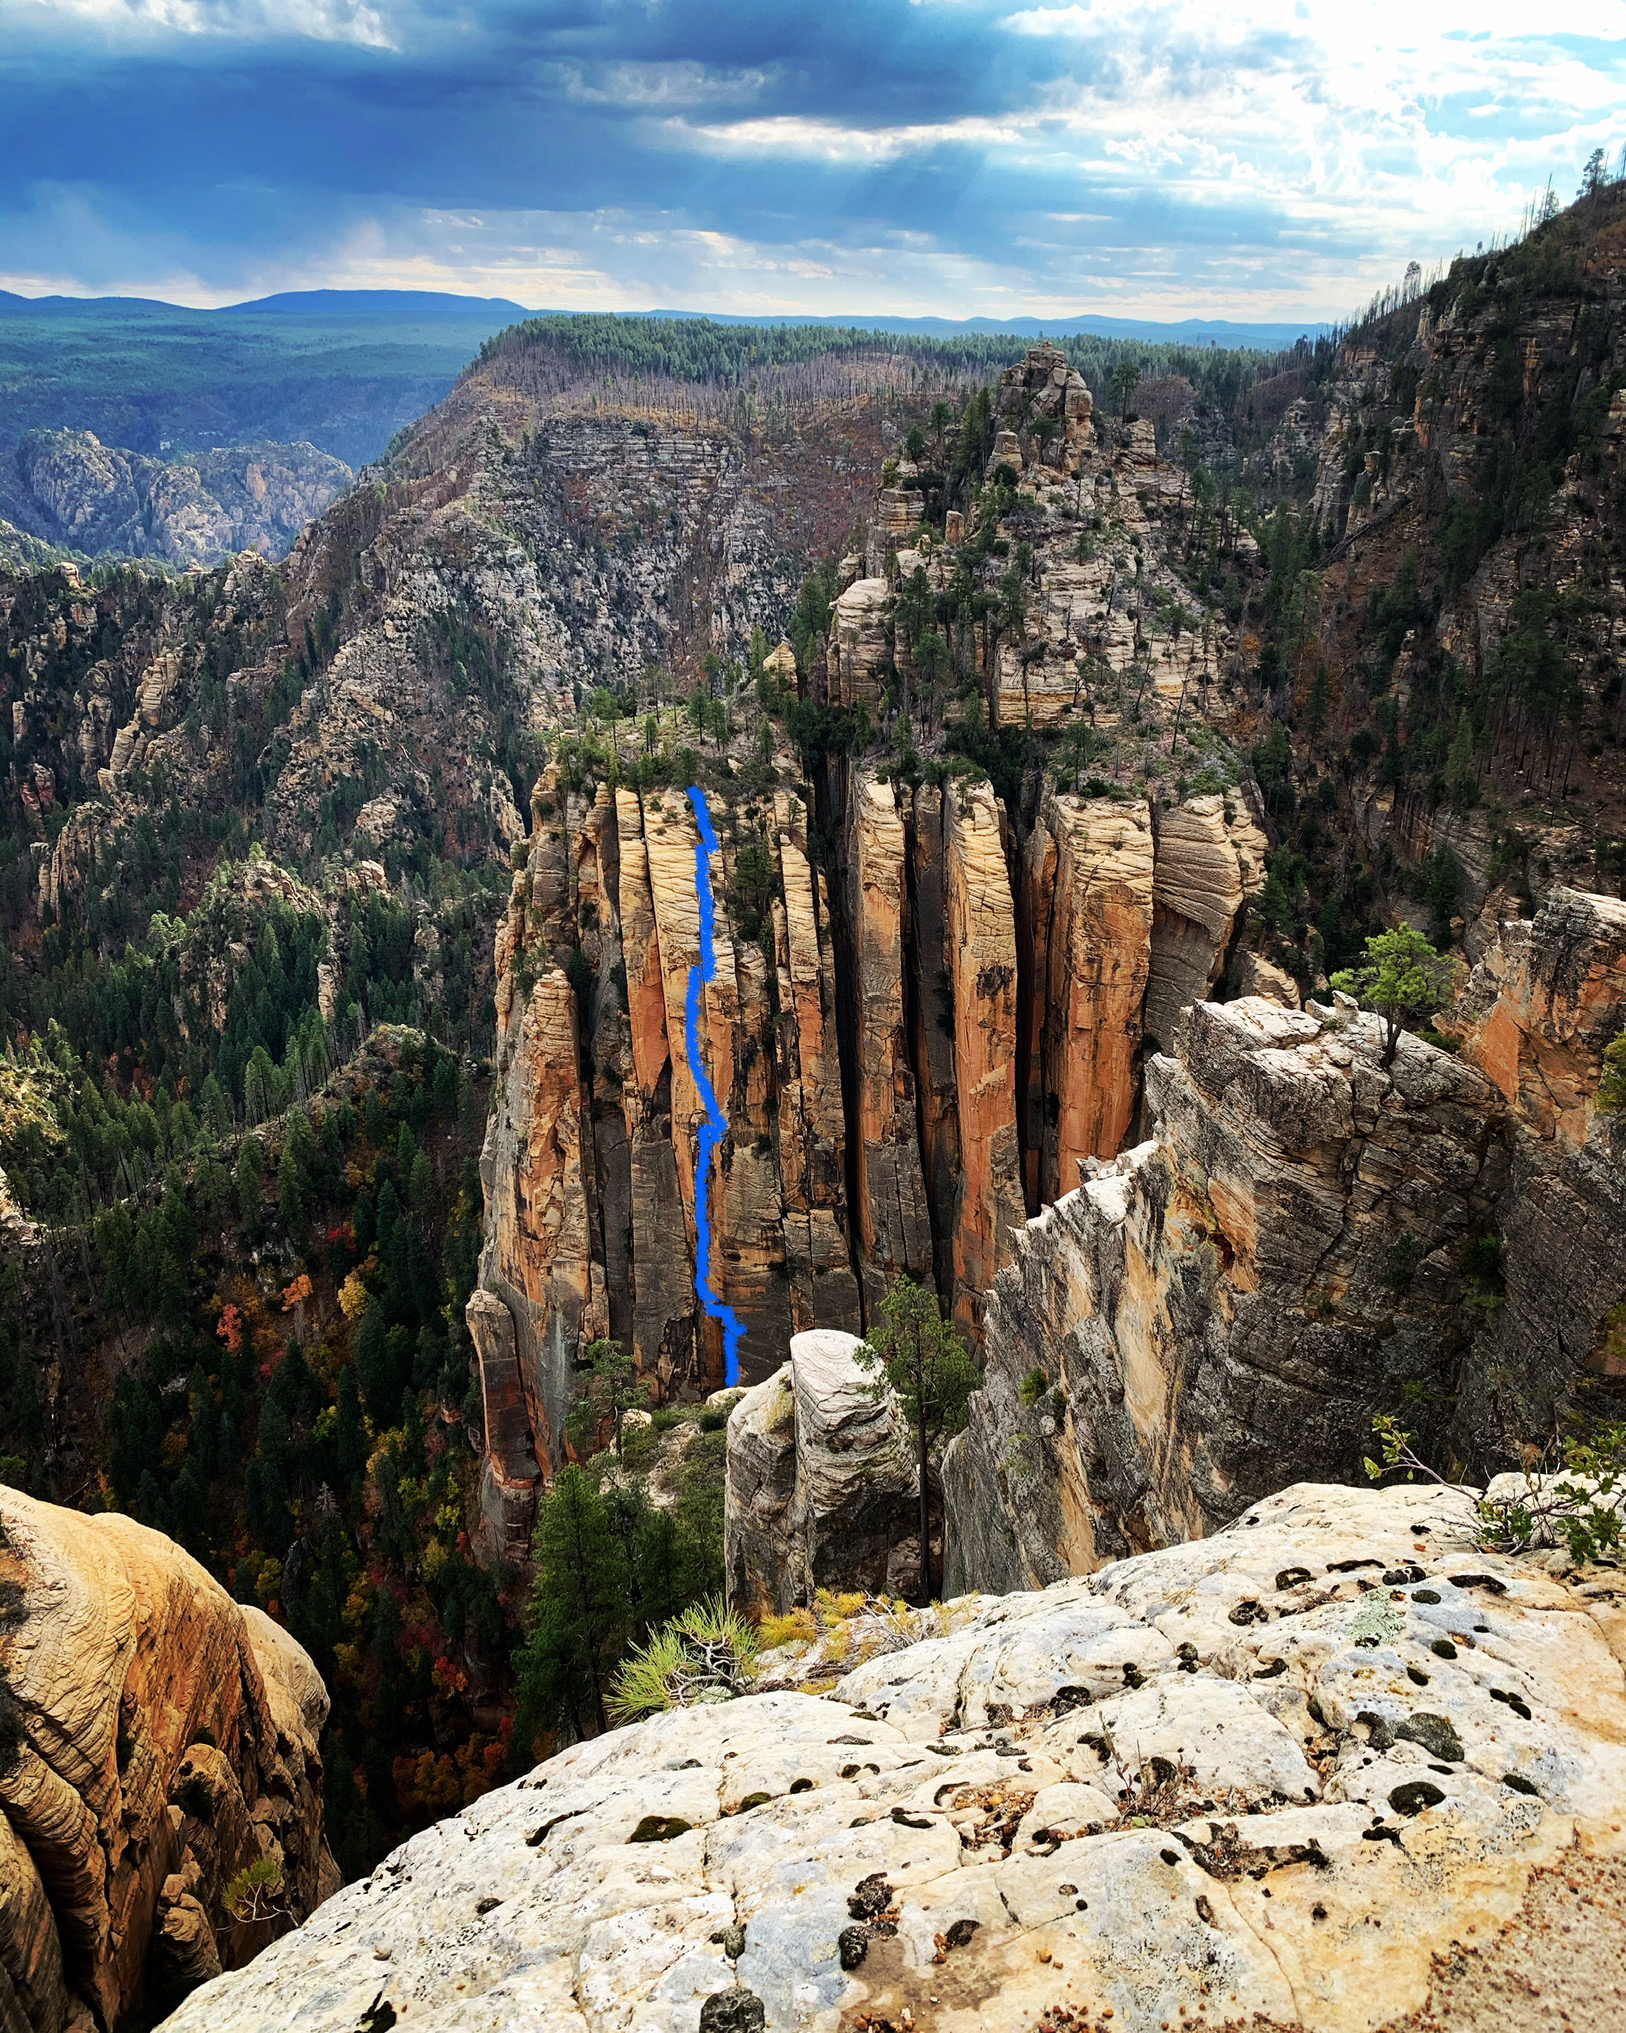 The approximate line of Cousin of Death (5.13+, 5 pitches) in northern Arizona. [Photo] Lor Sabourin